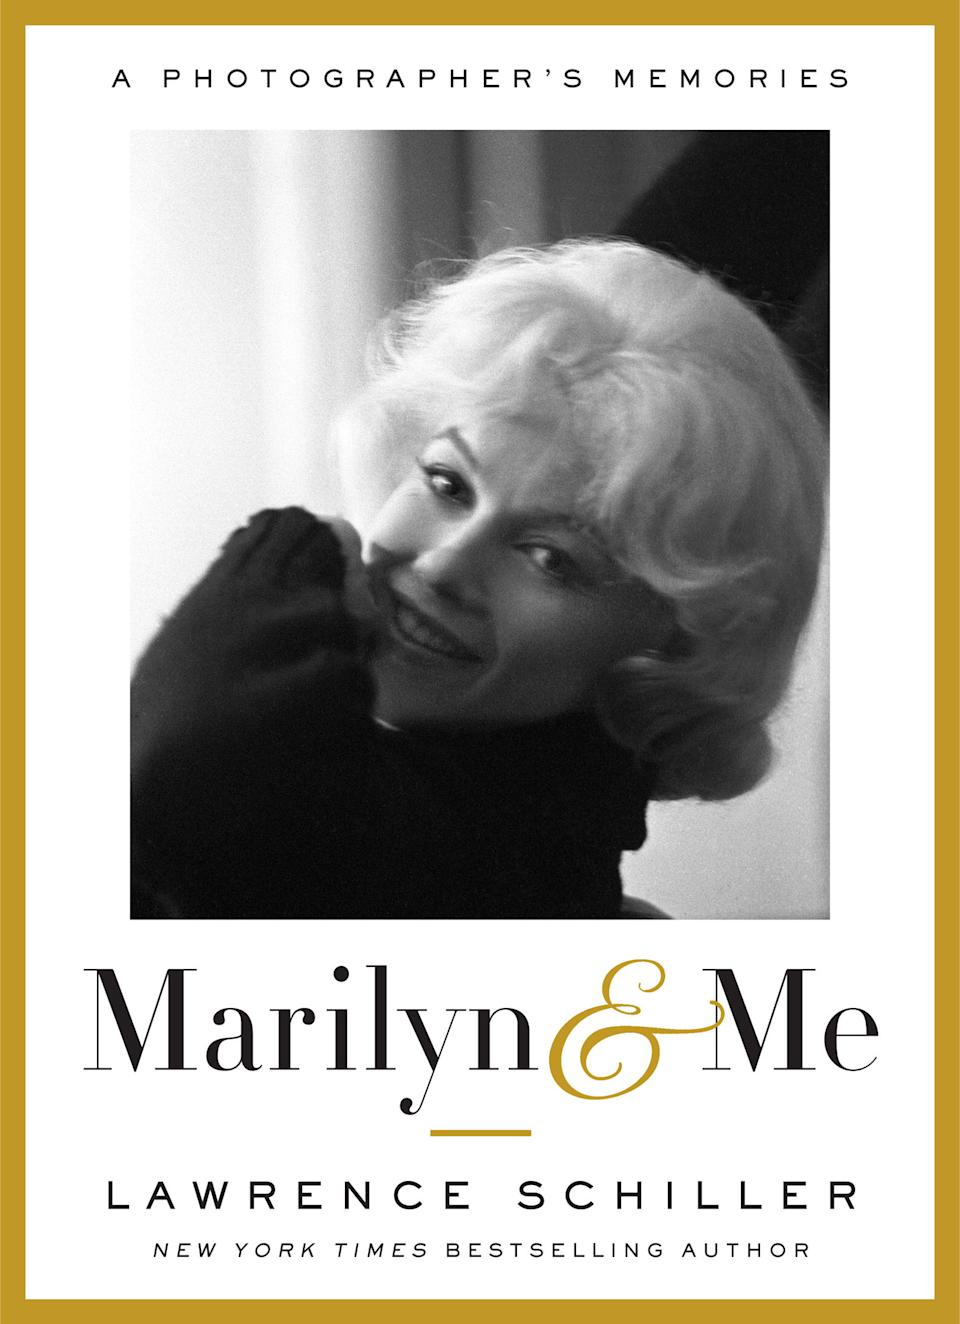 "This book cover image released by Doubleday shows ""Marilyn & Me: A Photographer's Memories,"" by Lawrence Schiller. (AP Photo/Doubleday)"